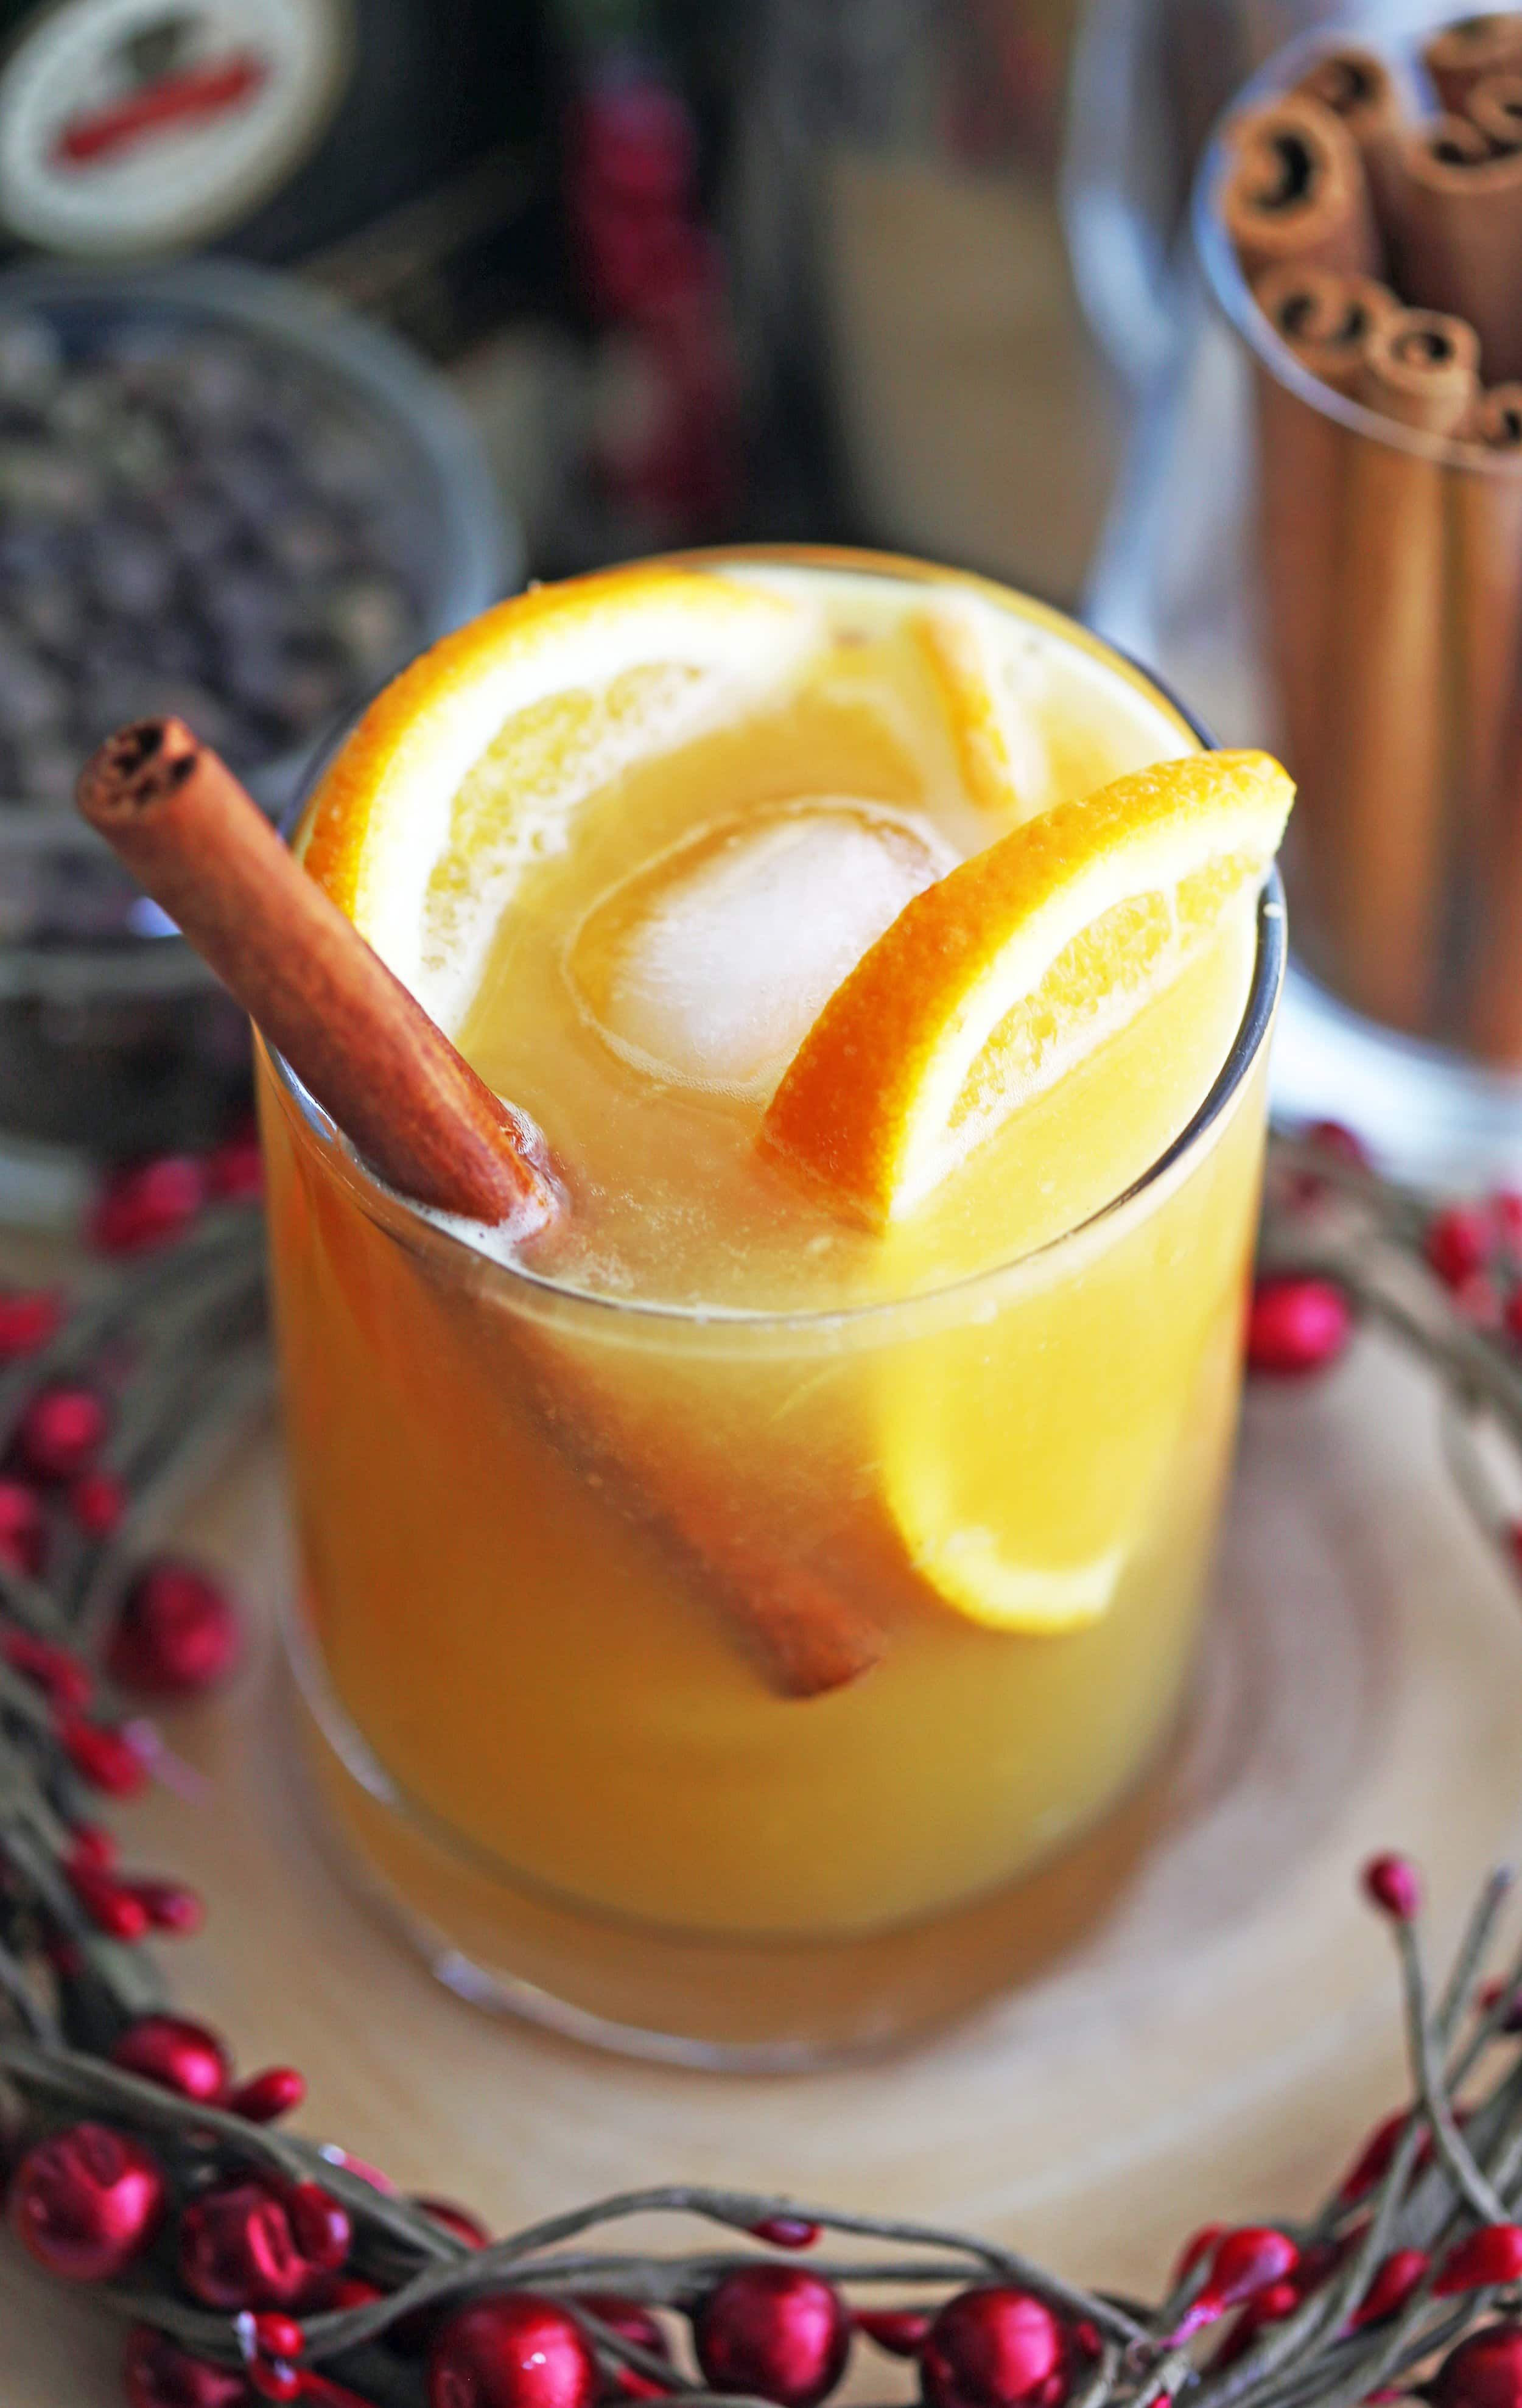 A closeup of a spiced orange brandy spritzer cocktail garnished with orange slices and a cinnamon stick in a glass.